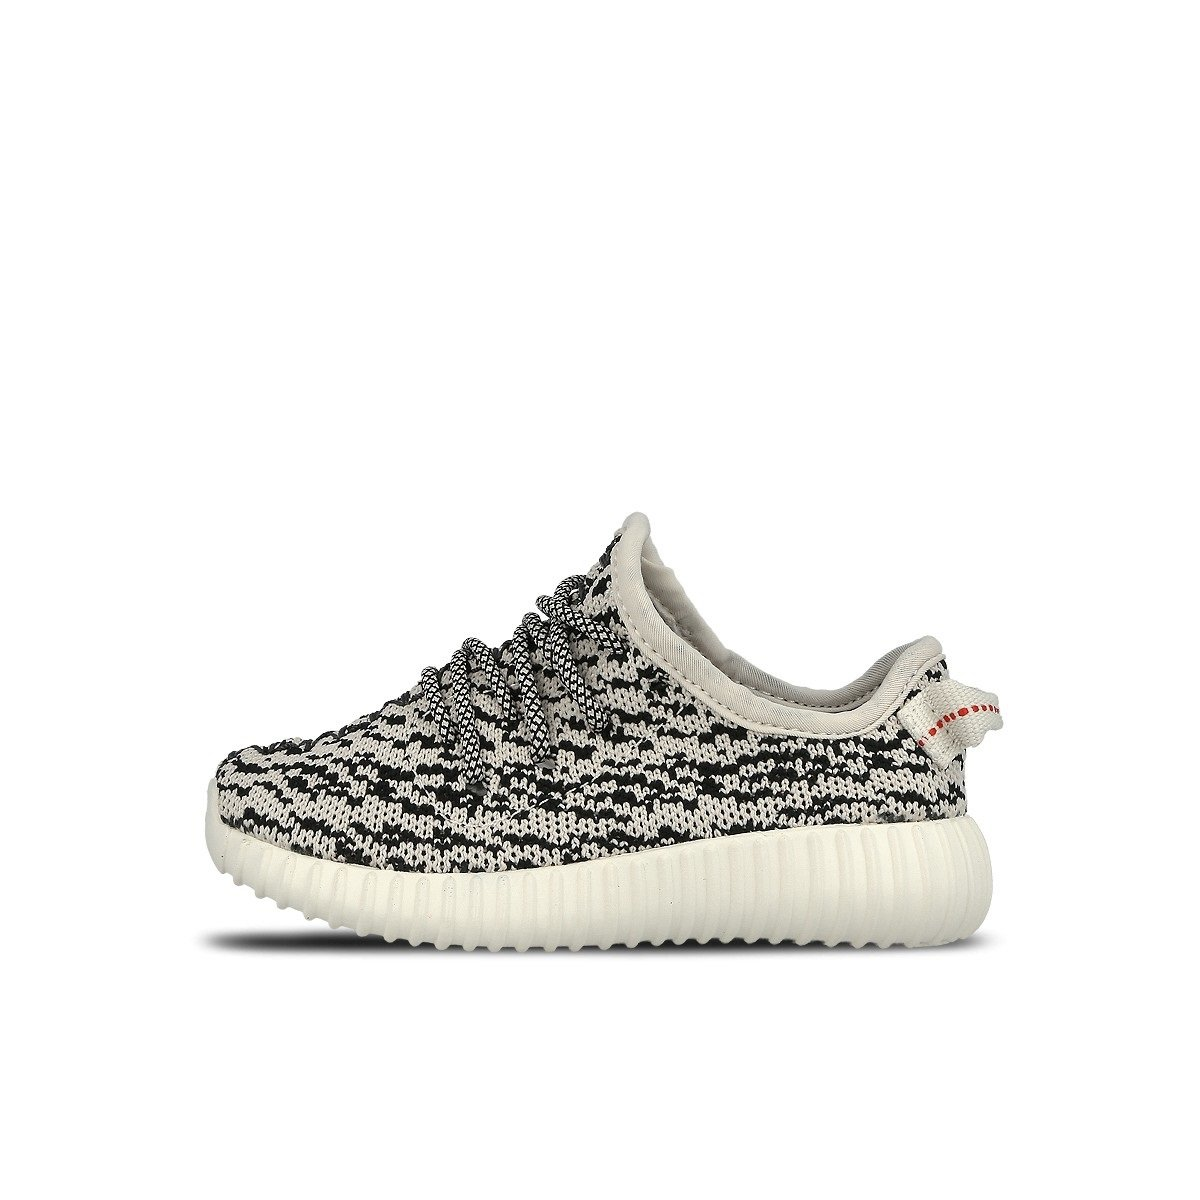 Adidas Yeezy Boost 350 Infant BB5454 Turtle Dove sz 10K